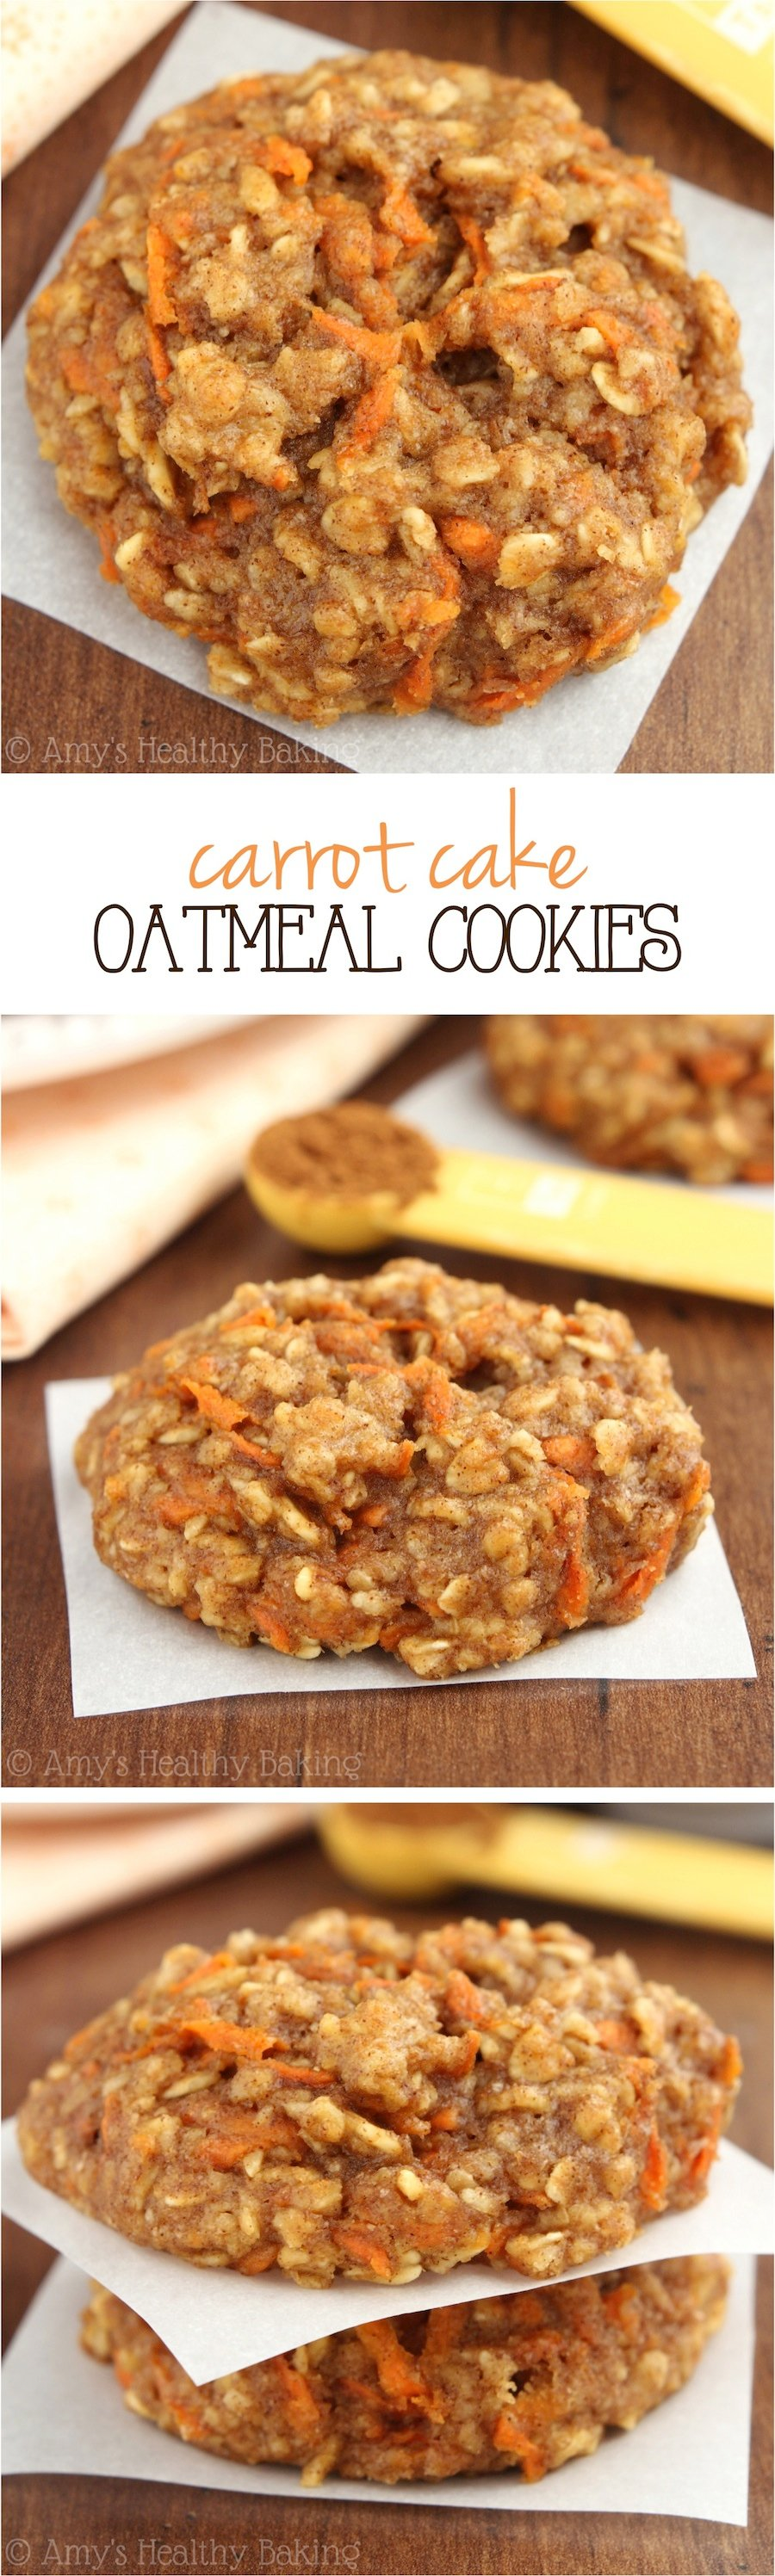 Low-Calorie Healthy Carrot Cake Oatmeal Cookies